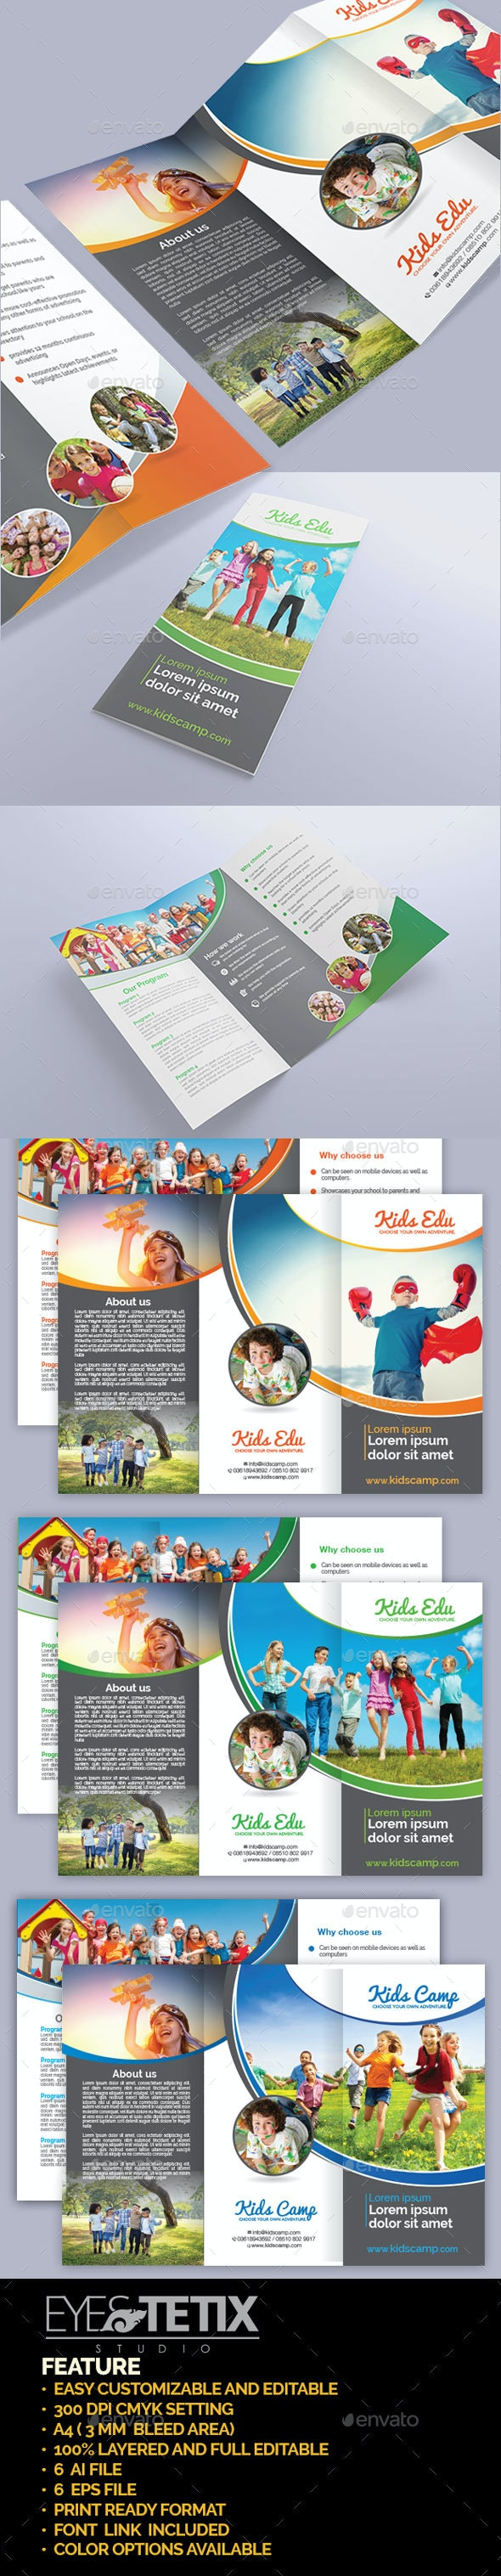 Kids Camp Education Brochure - Corporate Brochures